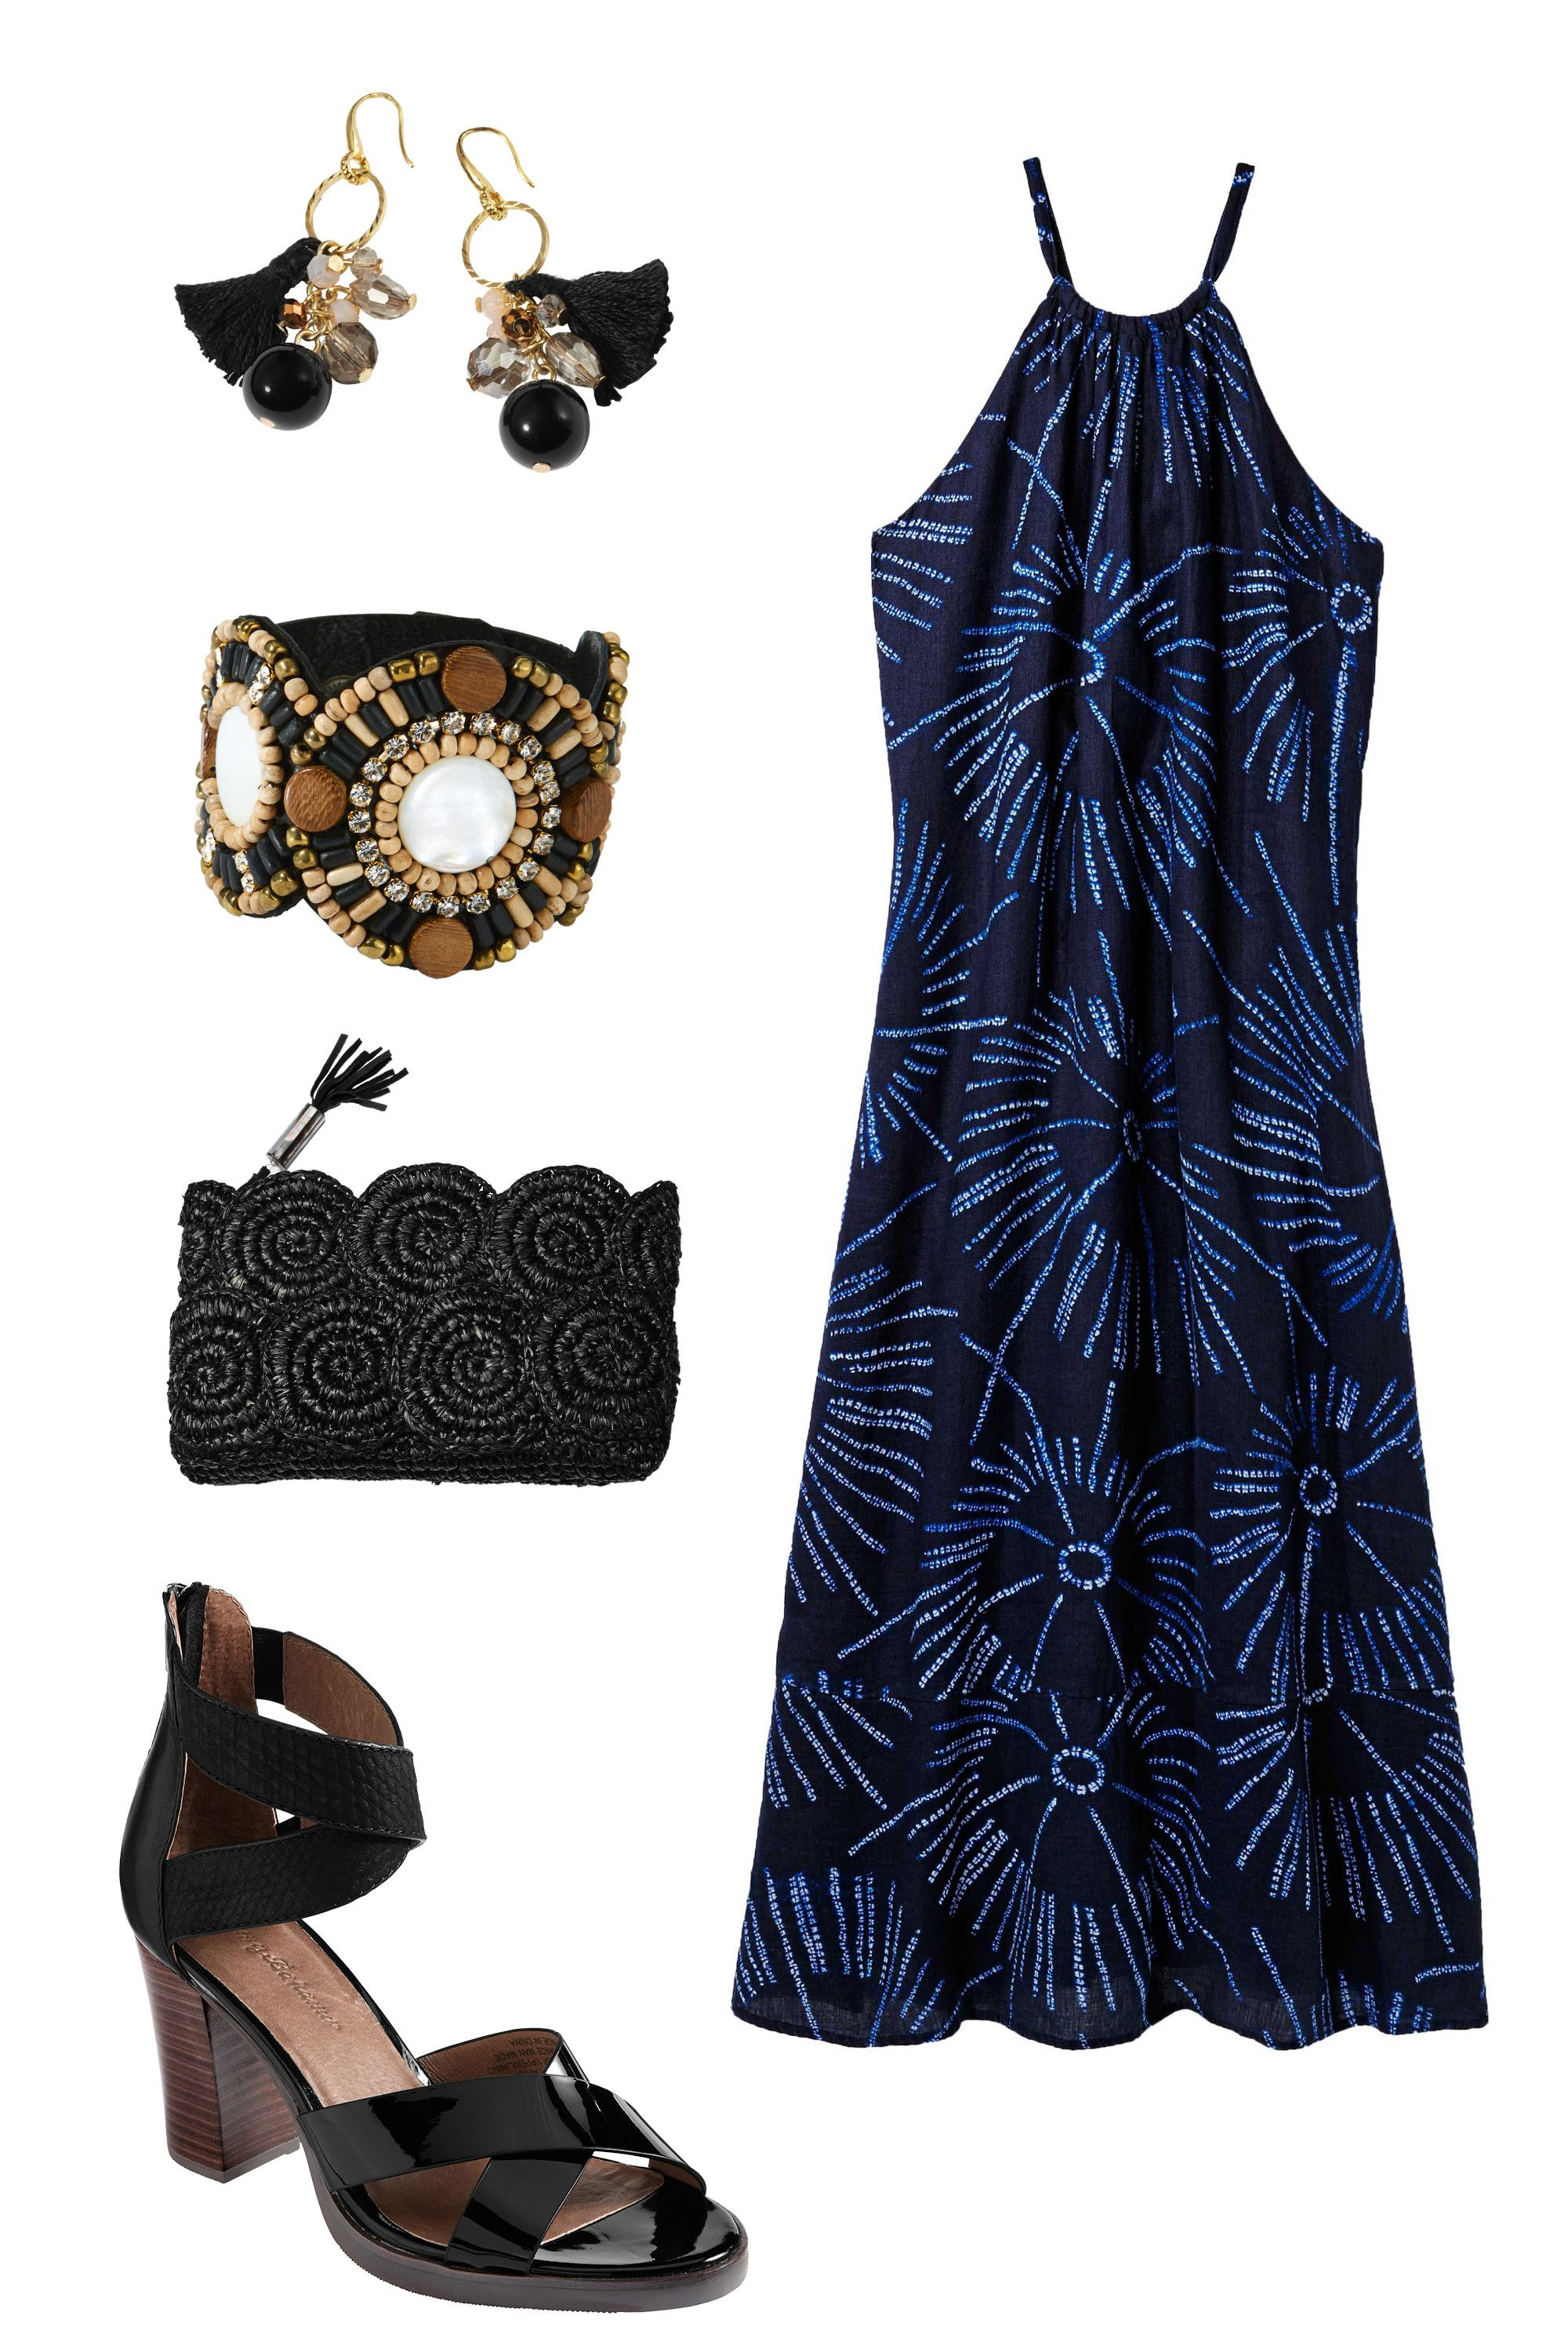 """<p>An evening spent enjoying cocktails on the roof calls for a flirty dress paired with chunky, wearable heels (in case you can't get a seat at the bar).<br></p><p><br></p><p><em></em><em>Tommy Bahama South of France Earrings, <a href=""""http://www.tommybahama.com/en/South-of-France-Earrings/p/THW715568-023"""" target=""""_blank"""">$48</a>&#x3B; Bastille Bursts Linen Halter Dress <a href=""""http://www.tommybahama.com/en/Bastille-Bursts-Linen-Halter-Dress/p/TW613570-5478"""" target=""""_blank"""">$158</a>&#x3B; Lavina Leather Sandals, <a href=""""http://www.tommybahama.com/en/c/en/Lavina-Leather-Sandals/p/TFW00235-023"""" target=""""_blank"""">$148</a>&#x3B; Rio Clutch, <a href=""""http://www.tommybahama.com/en/Rio-Clutch/p/THW745116-023"""" target=""""_blank"""">$138</a>&#x3B; Akiko Cuff, <a href=""""http://www.tommybahama.com/en/Akiko-Cuff/p/THW74168-023"""" target=""""_blank"""">$128</a></em><br></p>"""